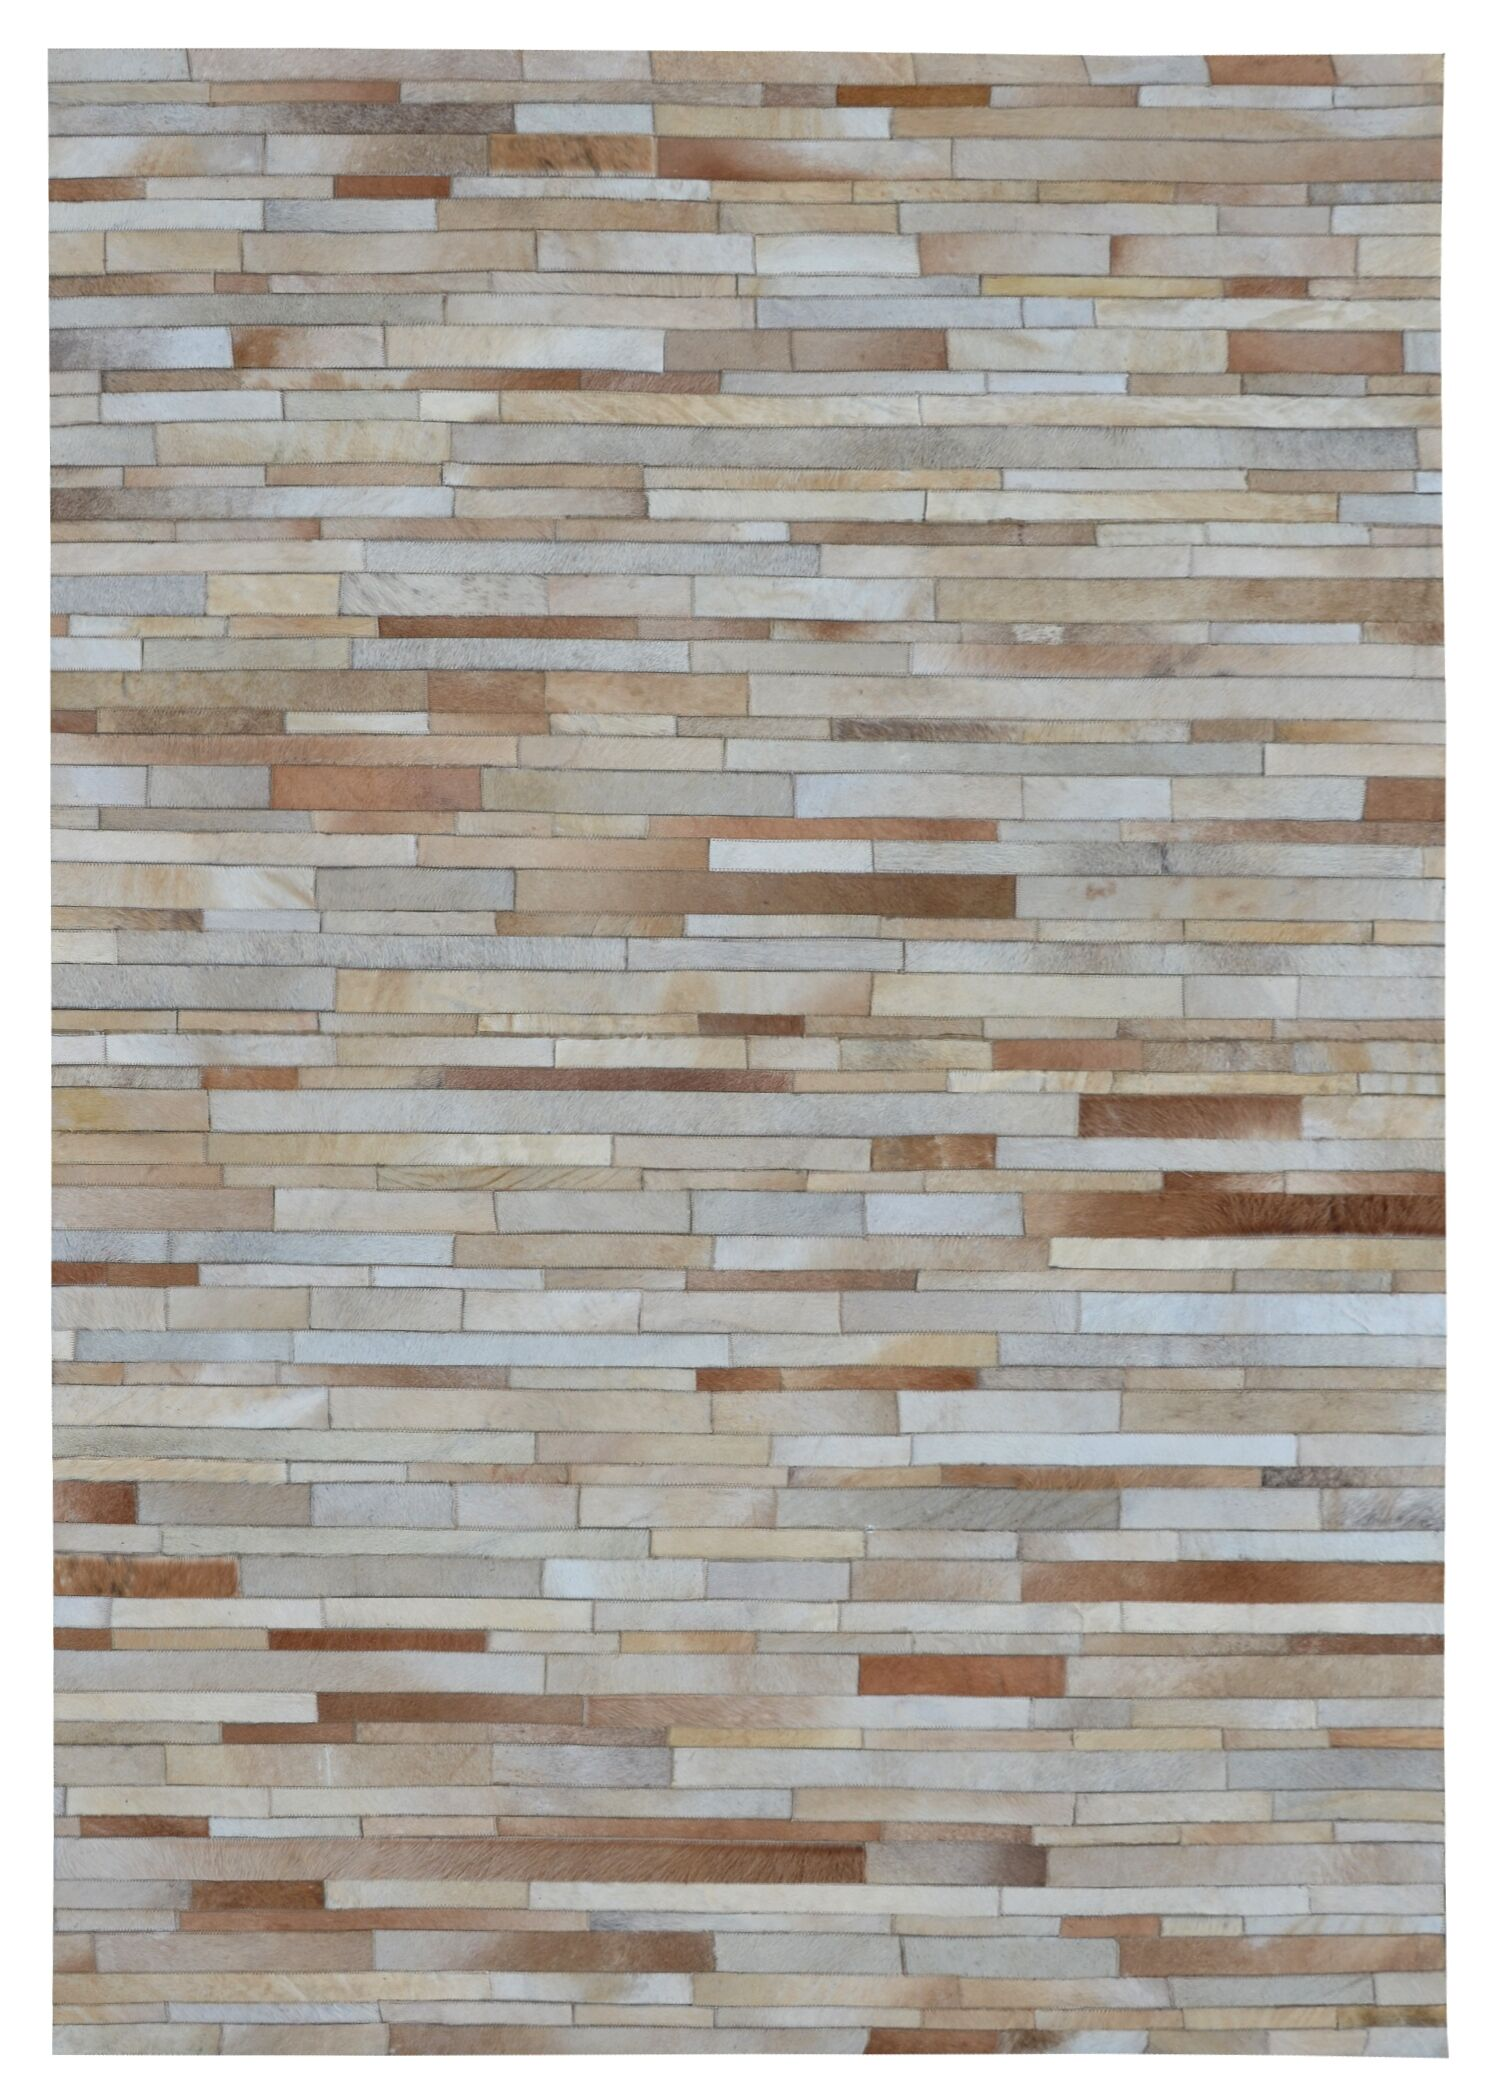 Chantalle Stripes Hand Woven Cowhide Tan Area Rug Rug Size: Rectangle 5' x 8'